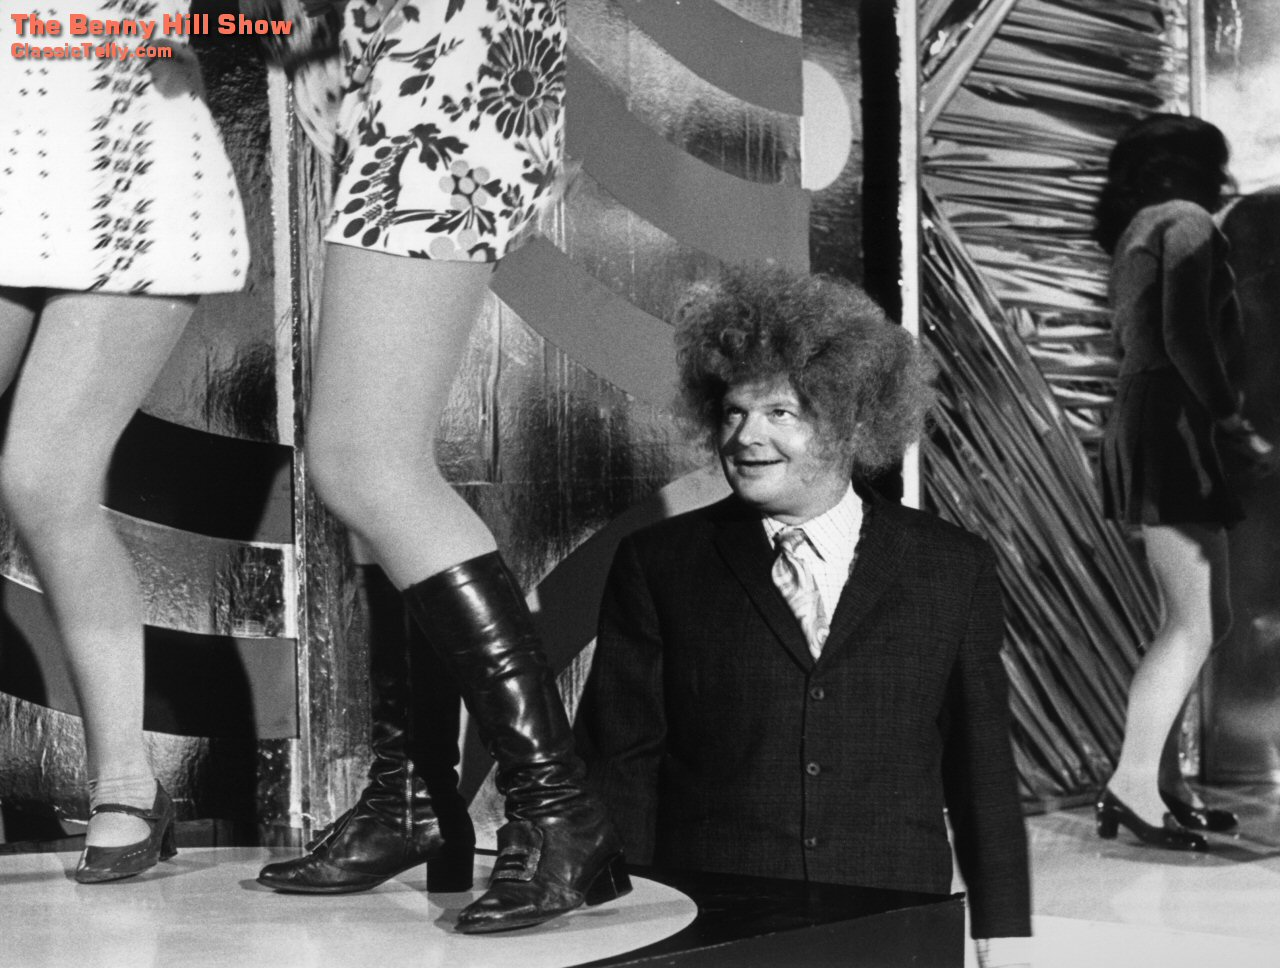 Benny Hill in a wig